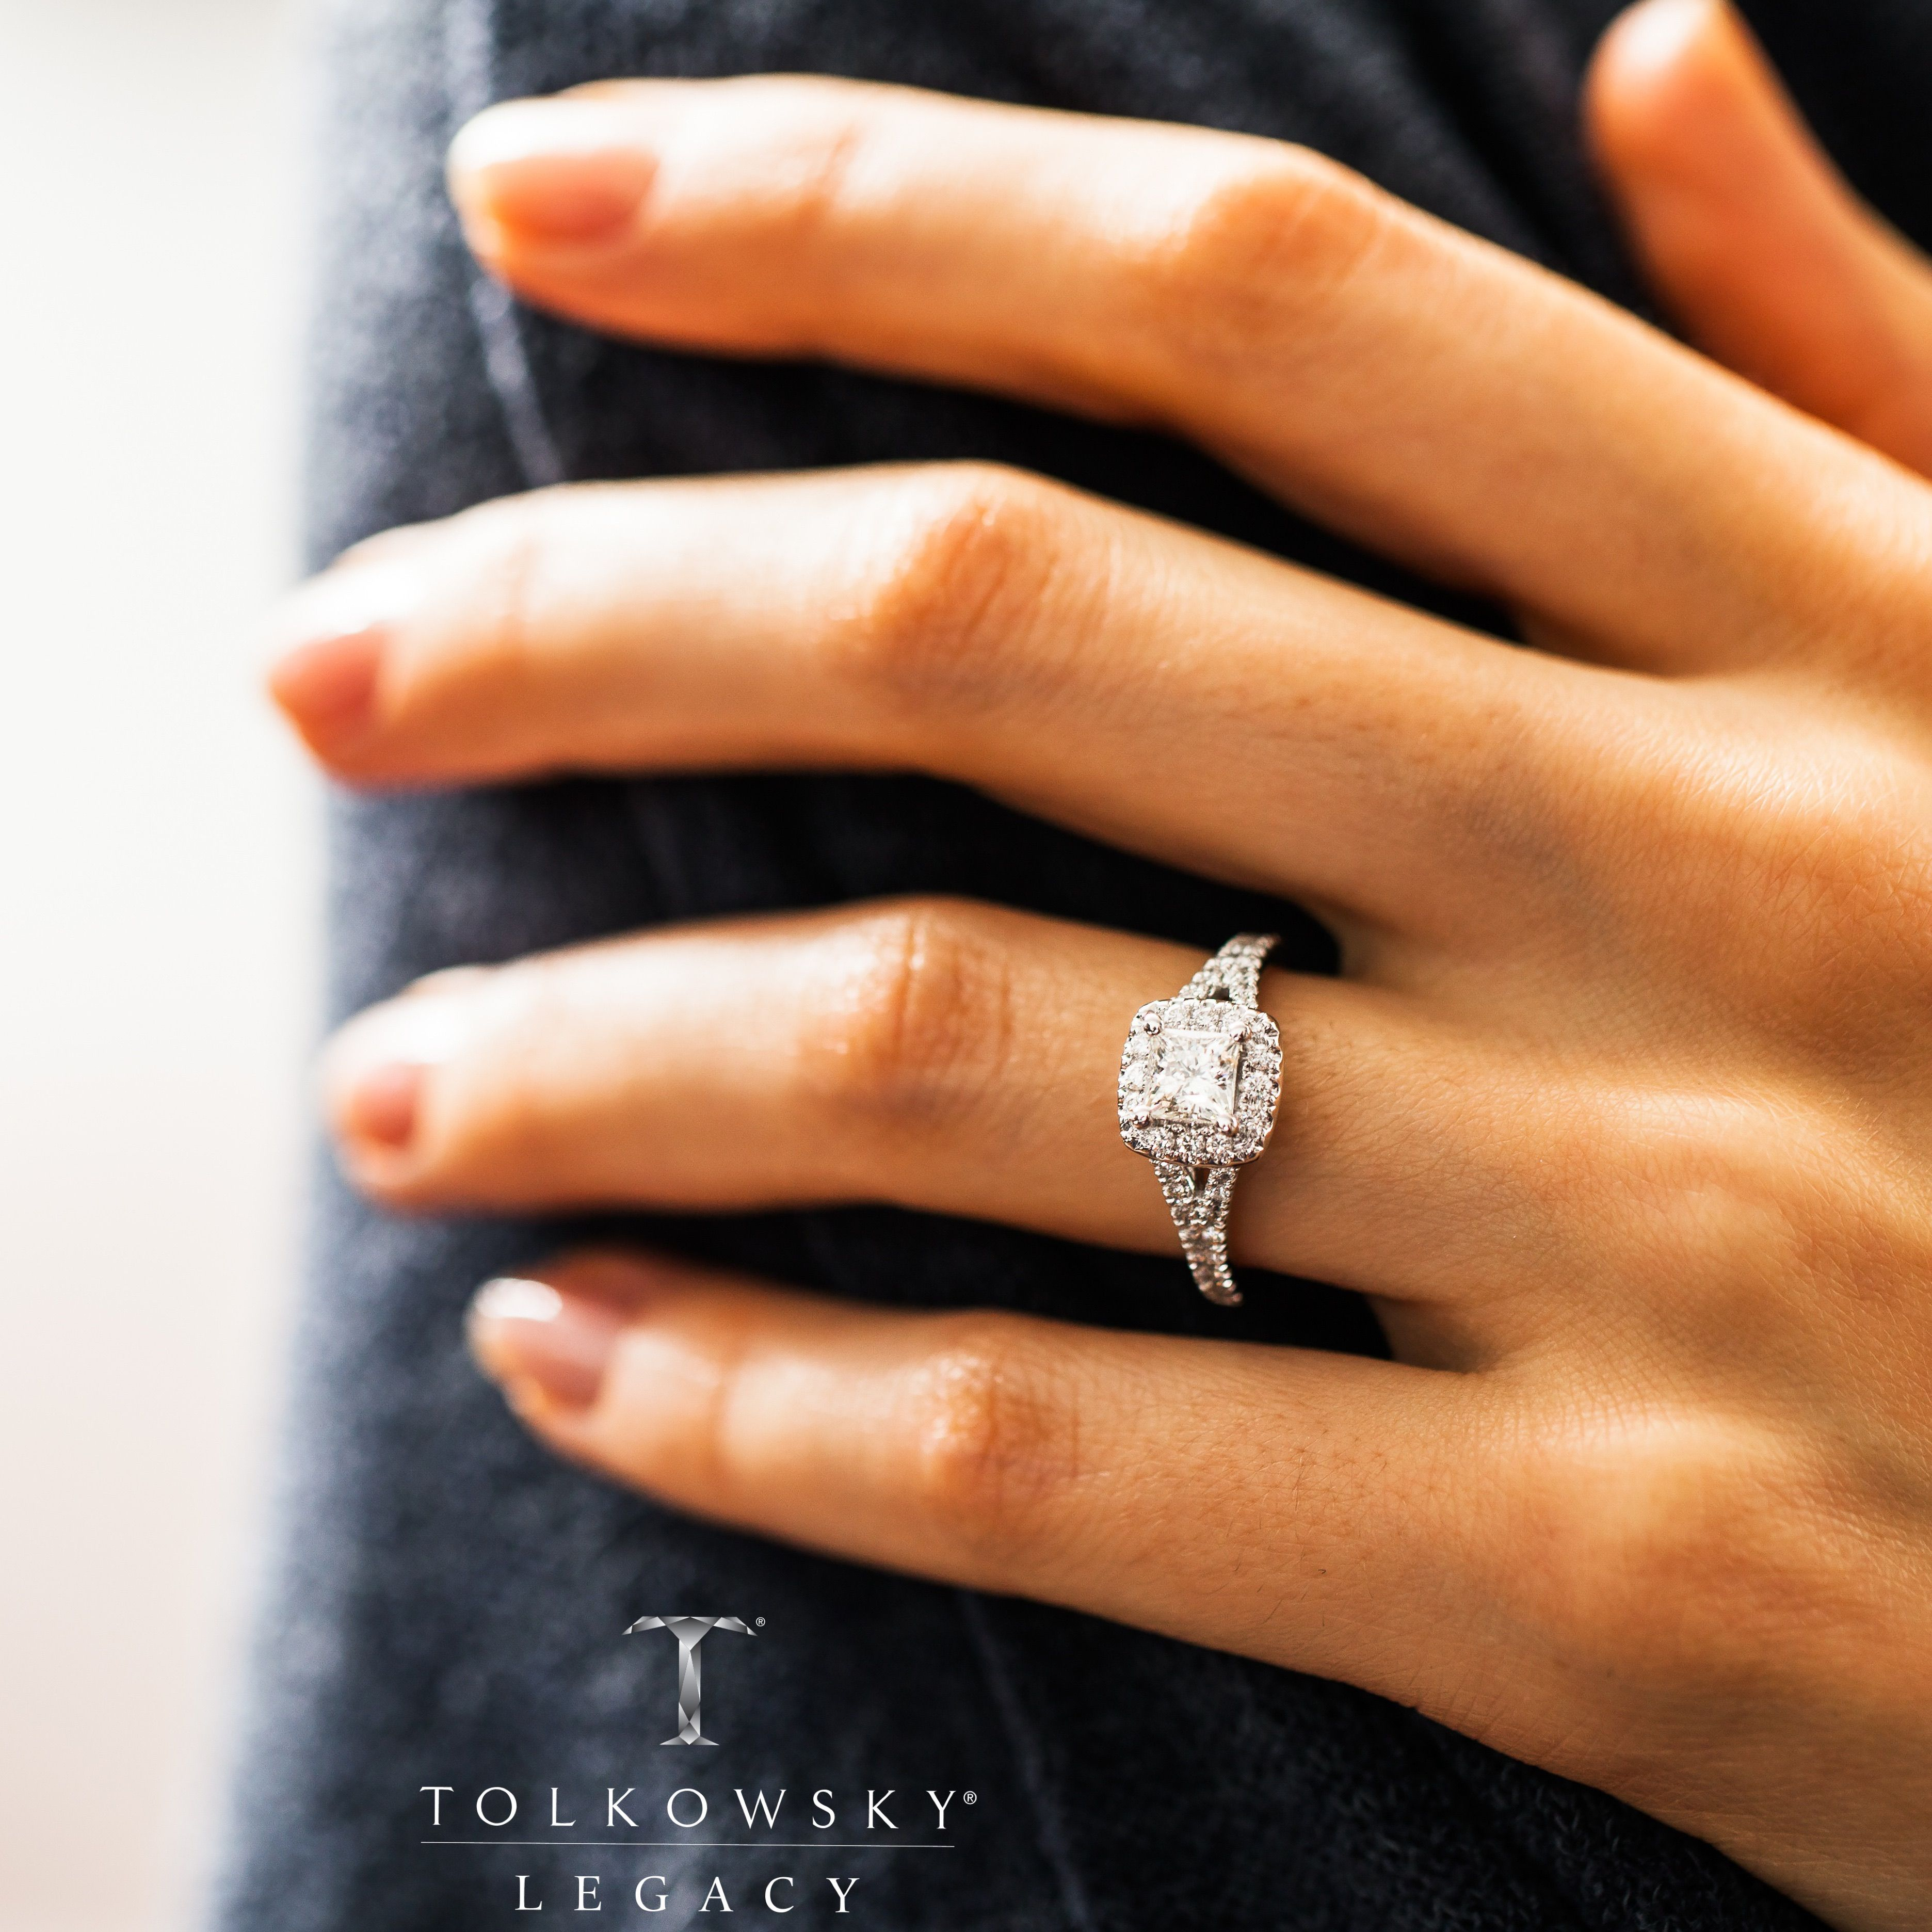 Pin By Tolkowsky On Tolkowsky Legacy Diamond Engagement